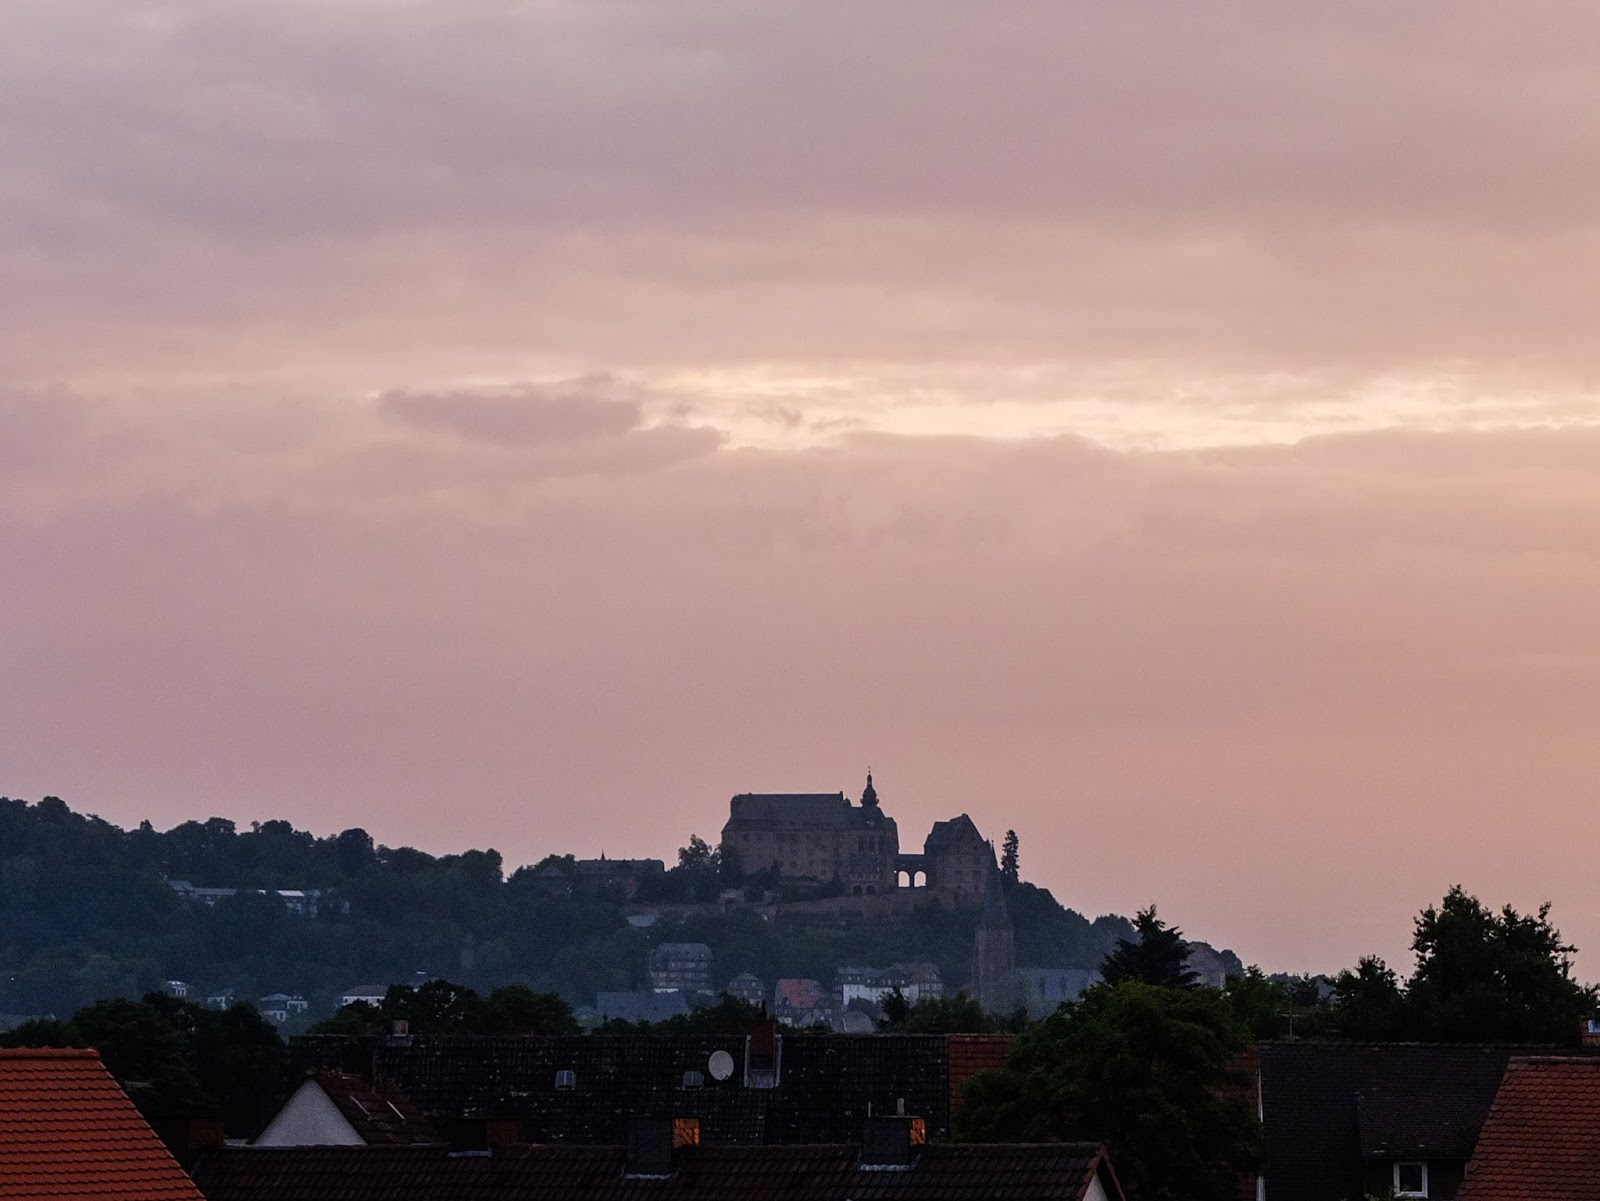 View of the Marburger Schloss at sunrise overlooking terracotta tiled roofs.